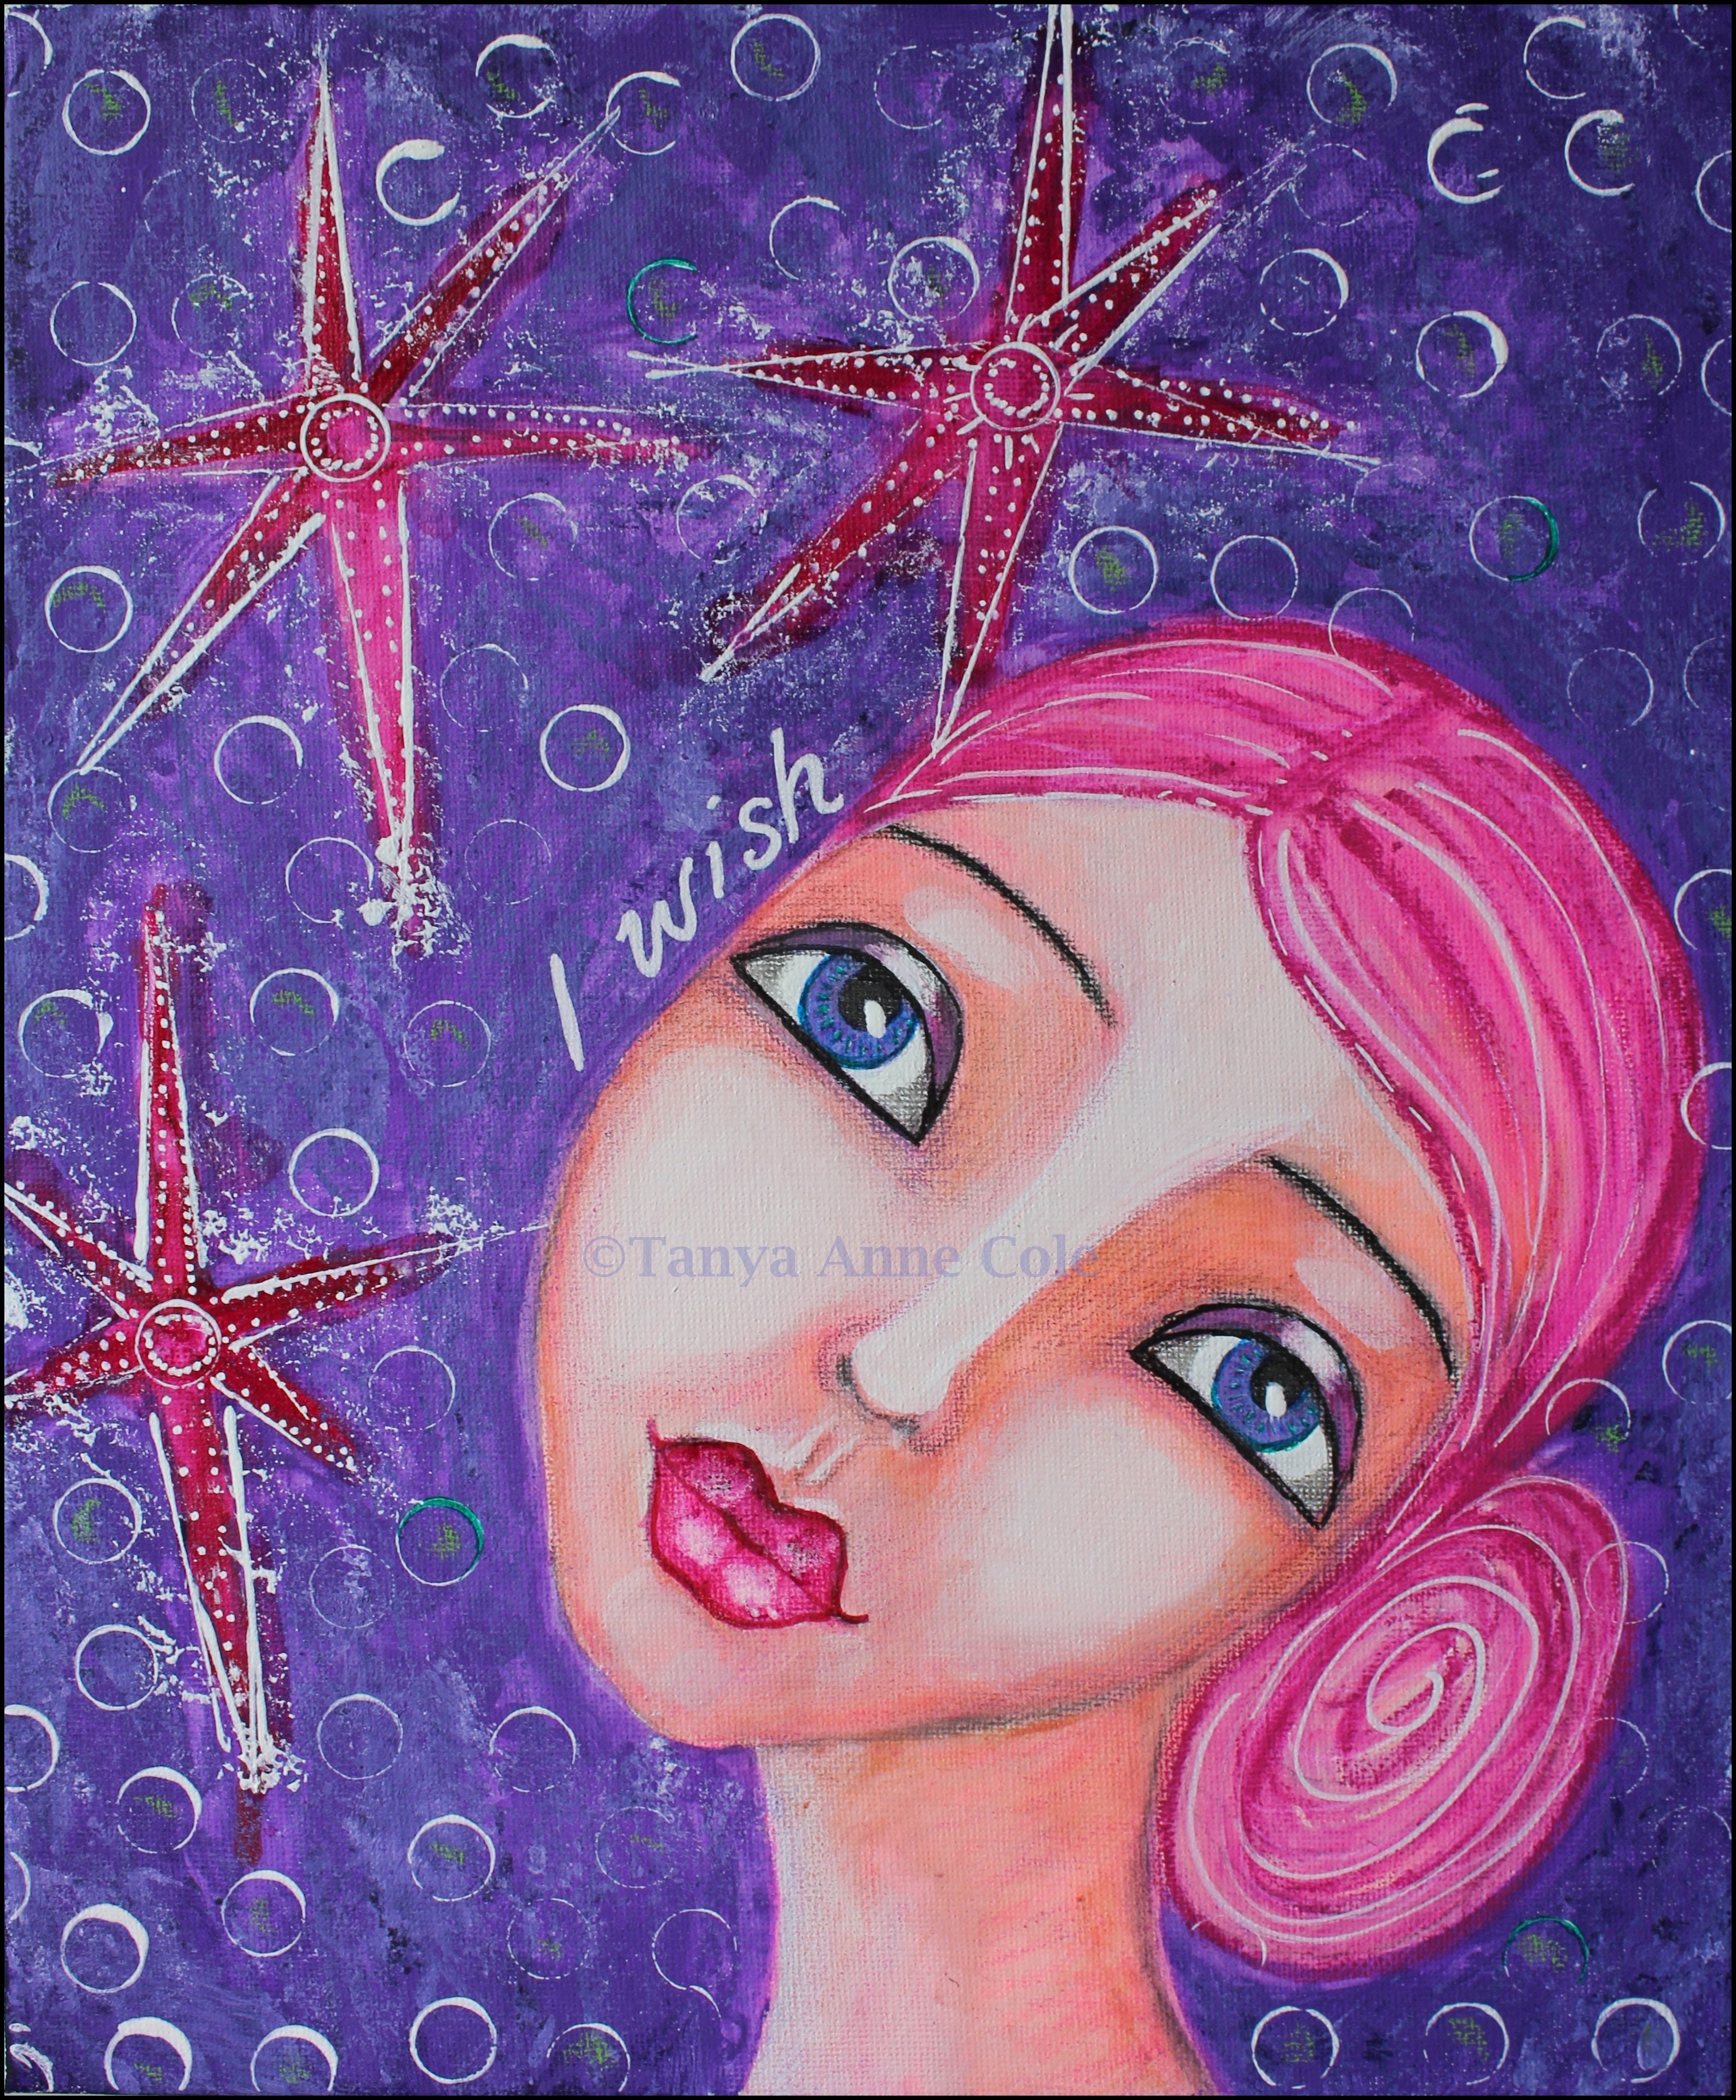 I wish pink haired girl on canvas gazing at stars